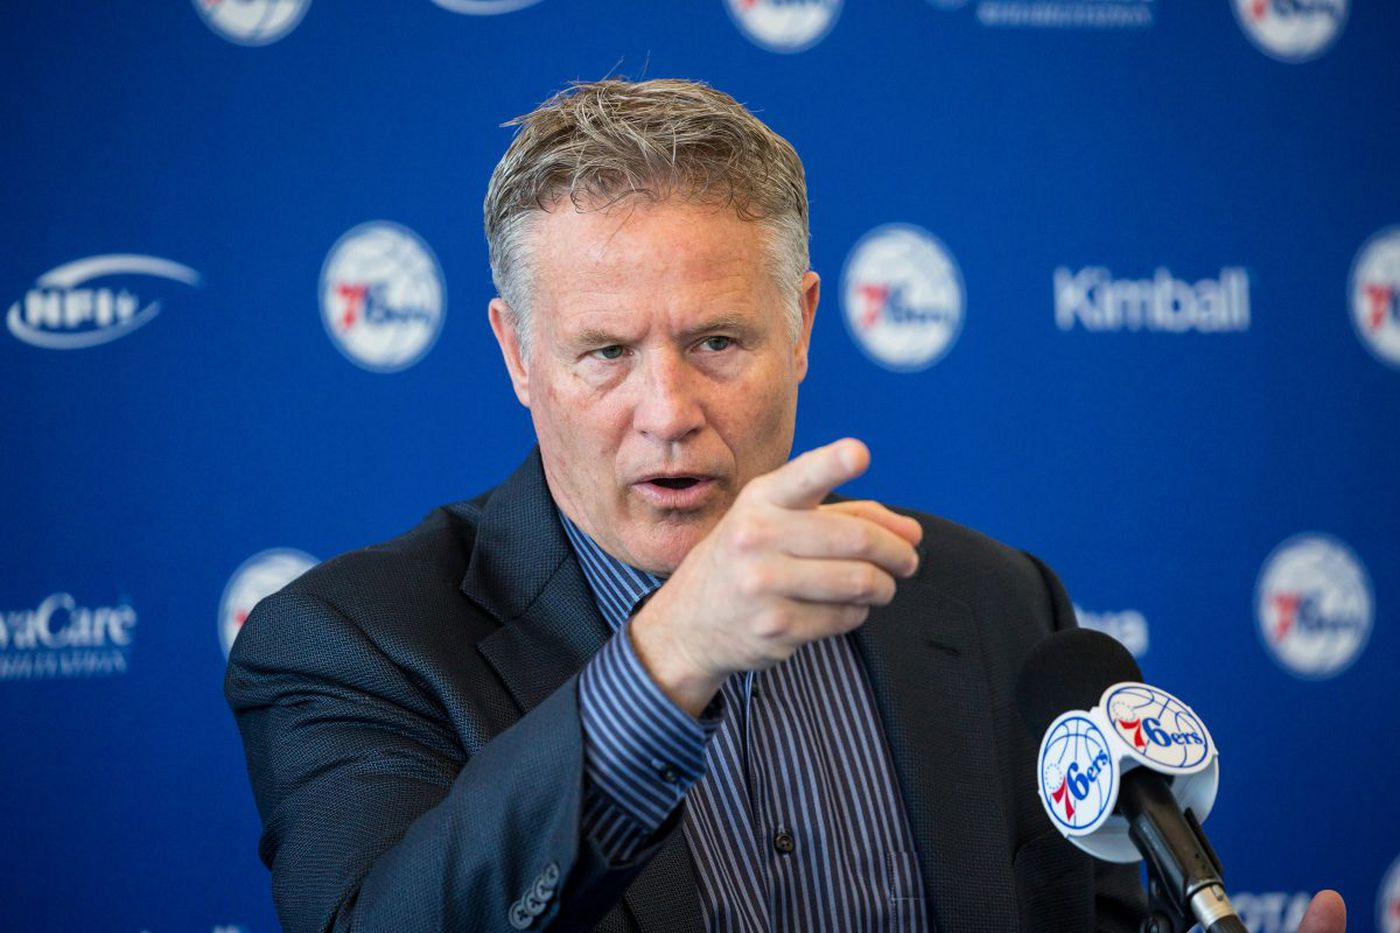 Brett Brown, after earning the Sixers' trust, deserves his imminent contract extension | Mike Sielski